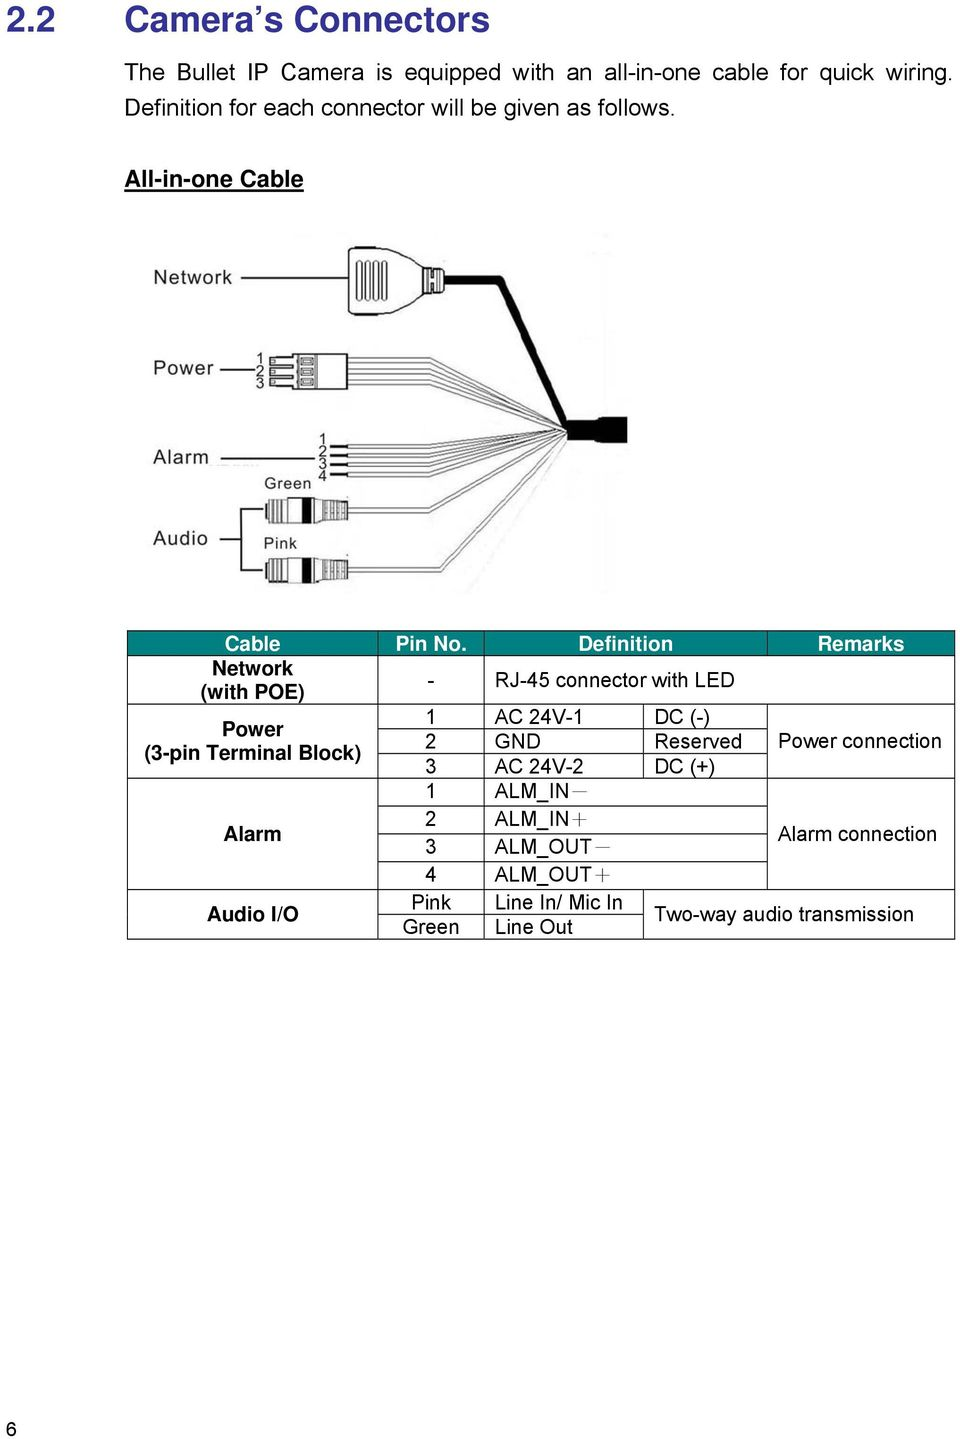 Definition Remarks Network - RJ-45 connector with LED (with POE) 1 AC 24V-1 DC (-) Power 2 GND Reserved Power connection